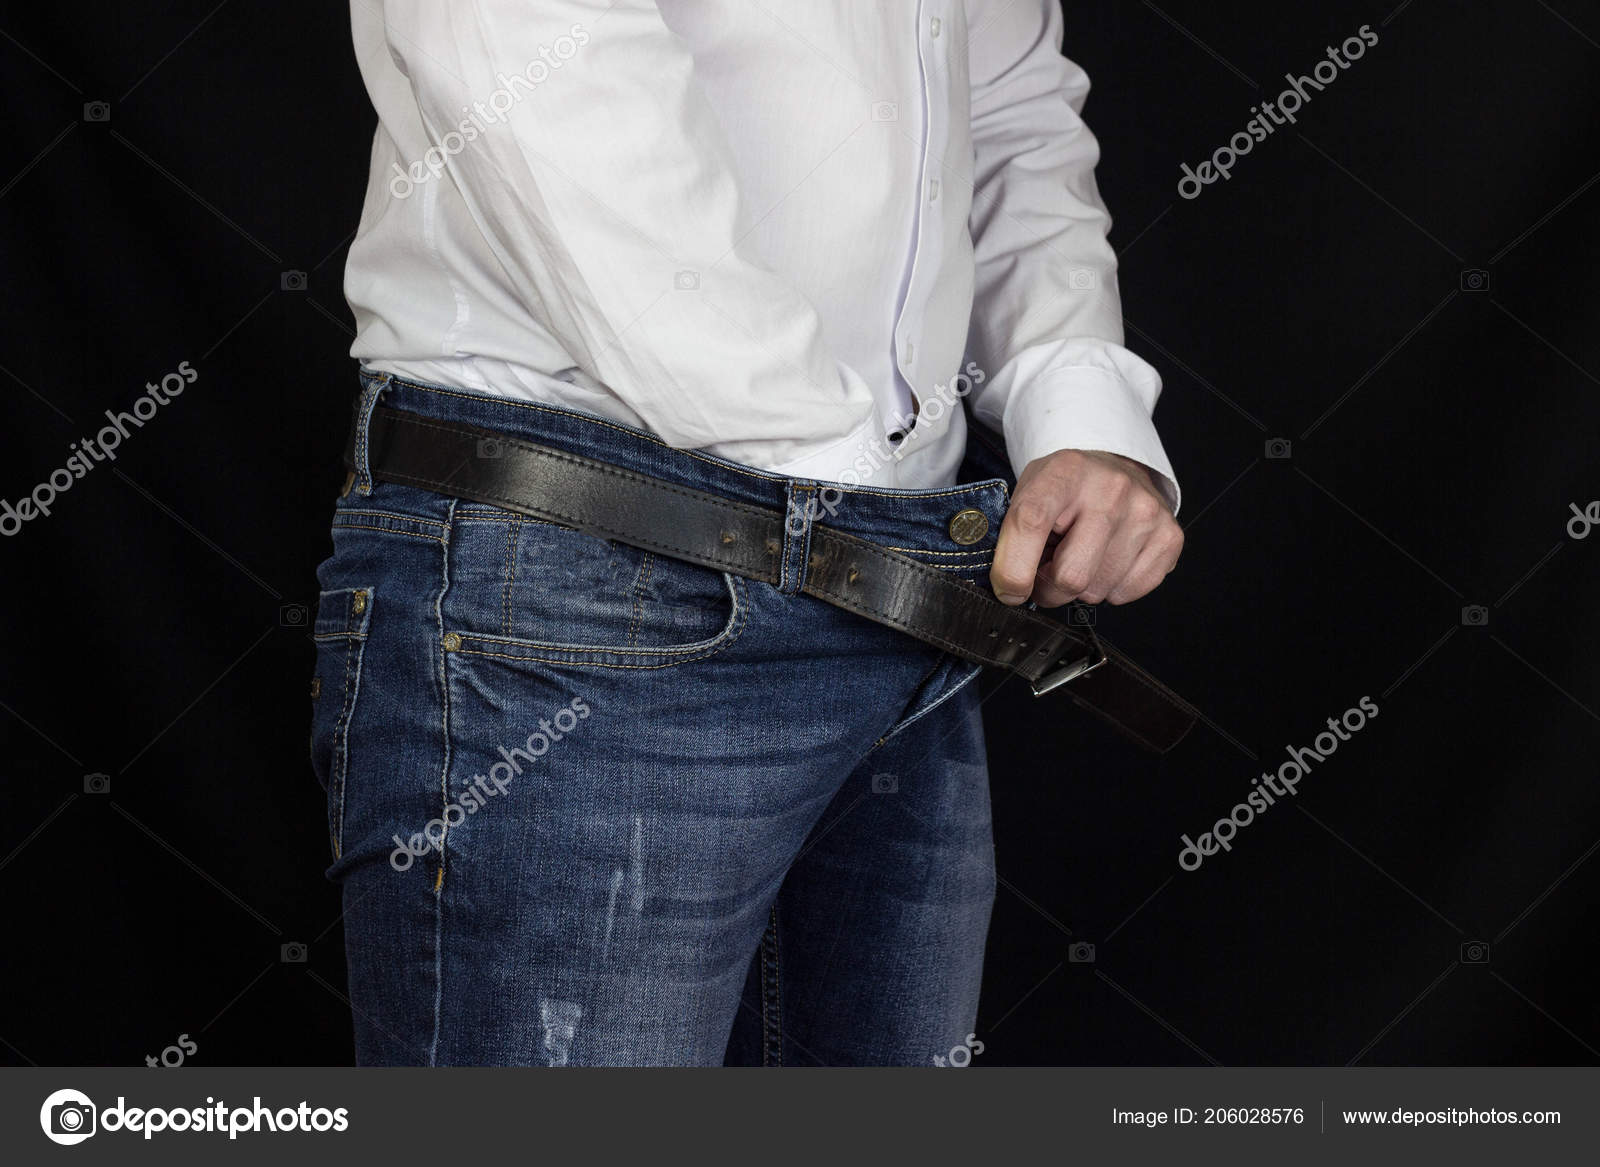 A man in a white shirt and jeans thrust his hand into his